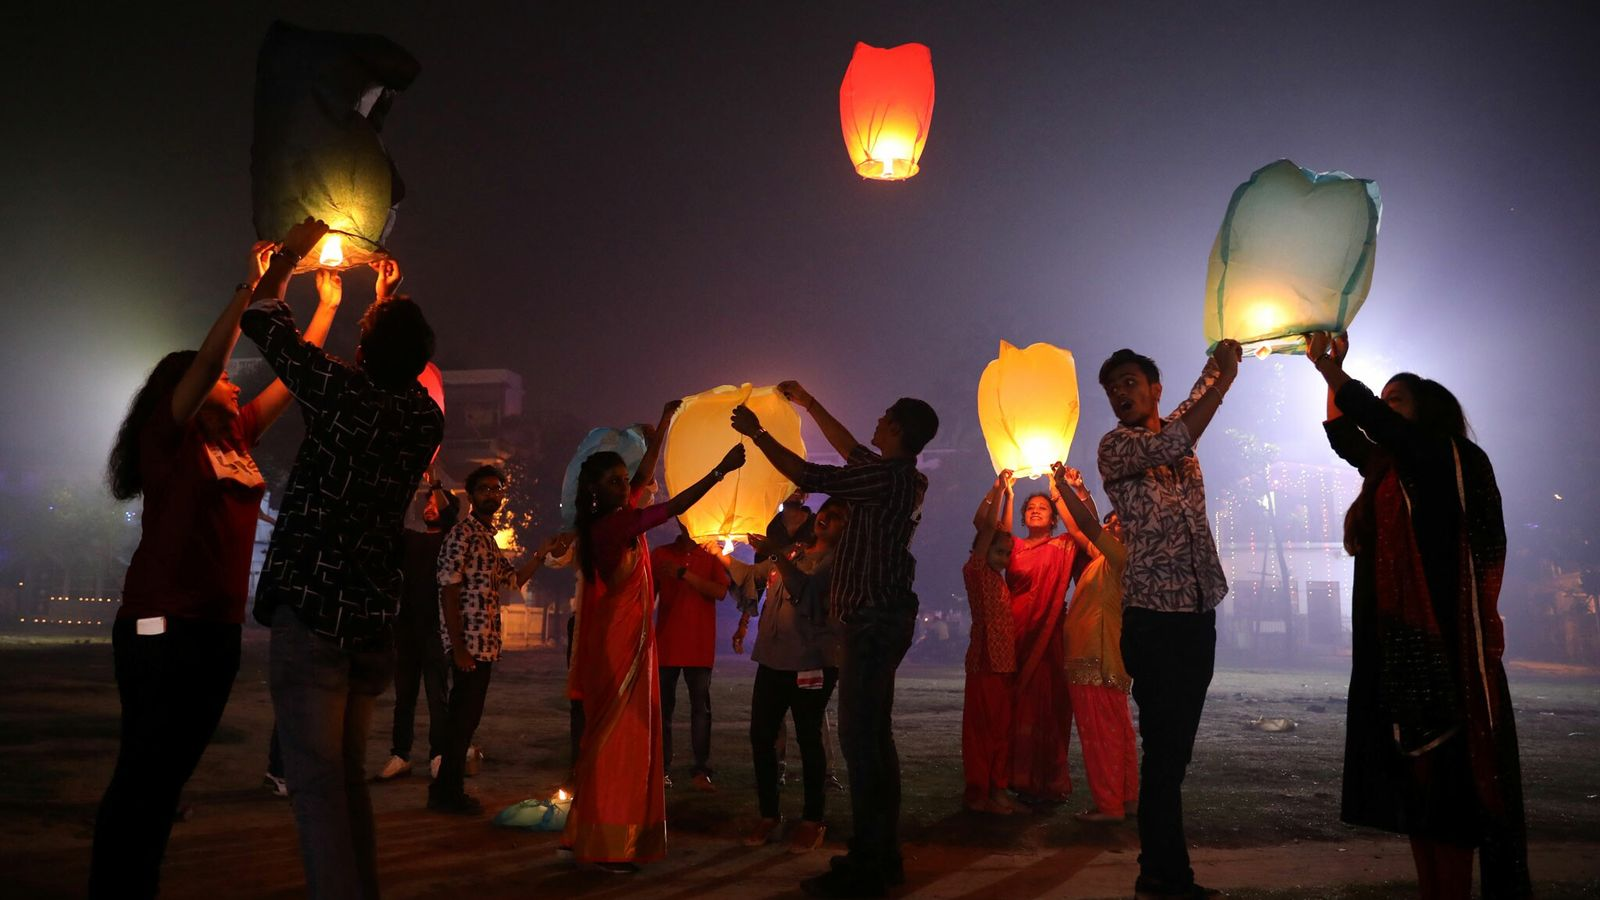 People gather to release sky lanterns in celebration of Diwali—India's five-day festival of lights—in the town ...